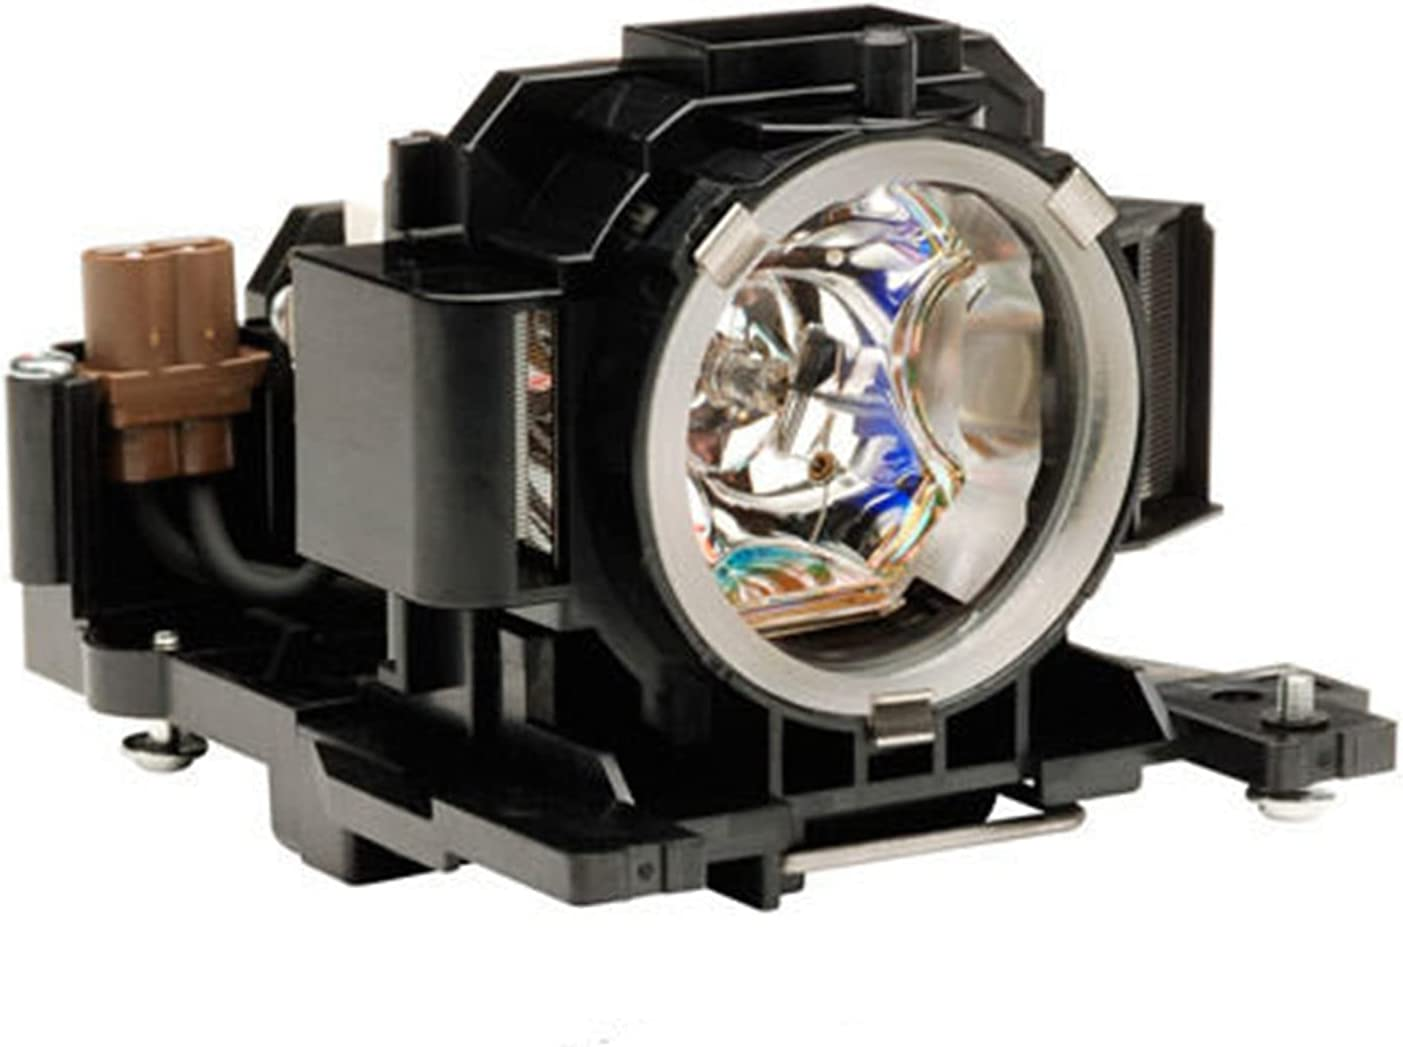 2021 spring and summer new LMP-H130 Replacement Projector Lamp with Special price for a limited time H HS50 Sony Housing